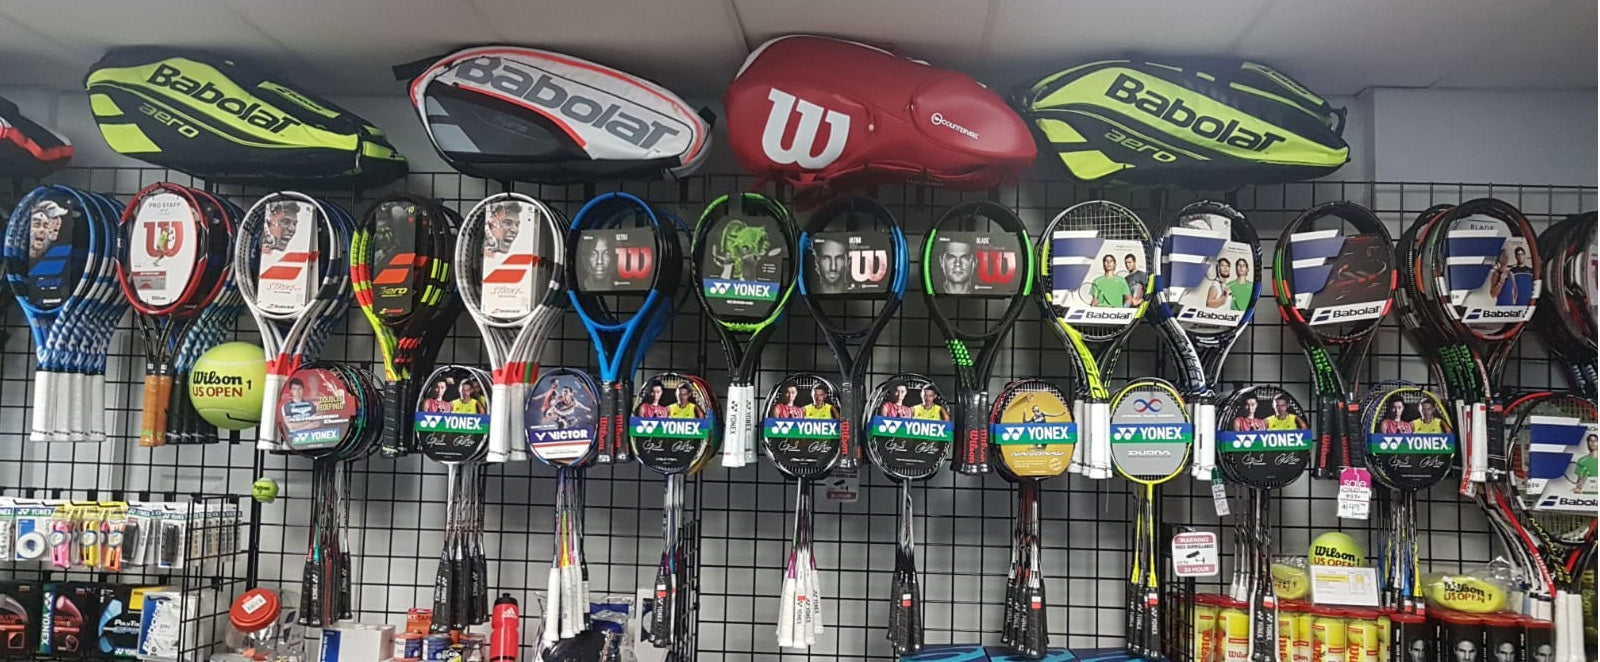 T1 SPORTS - Badminton & Tennis Store in Canada